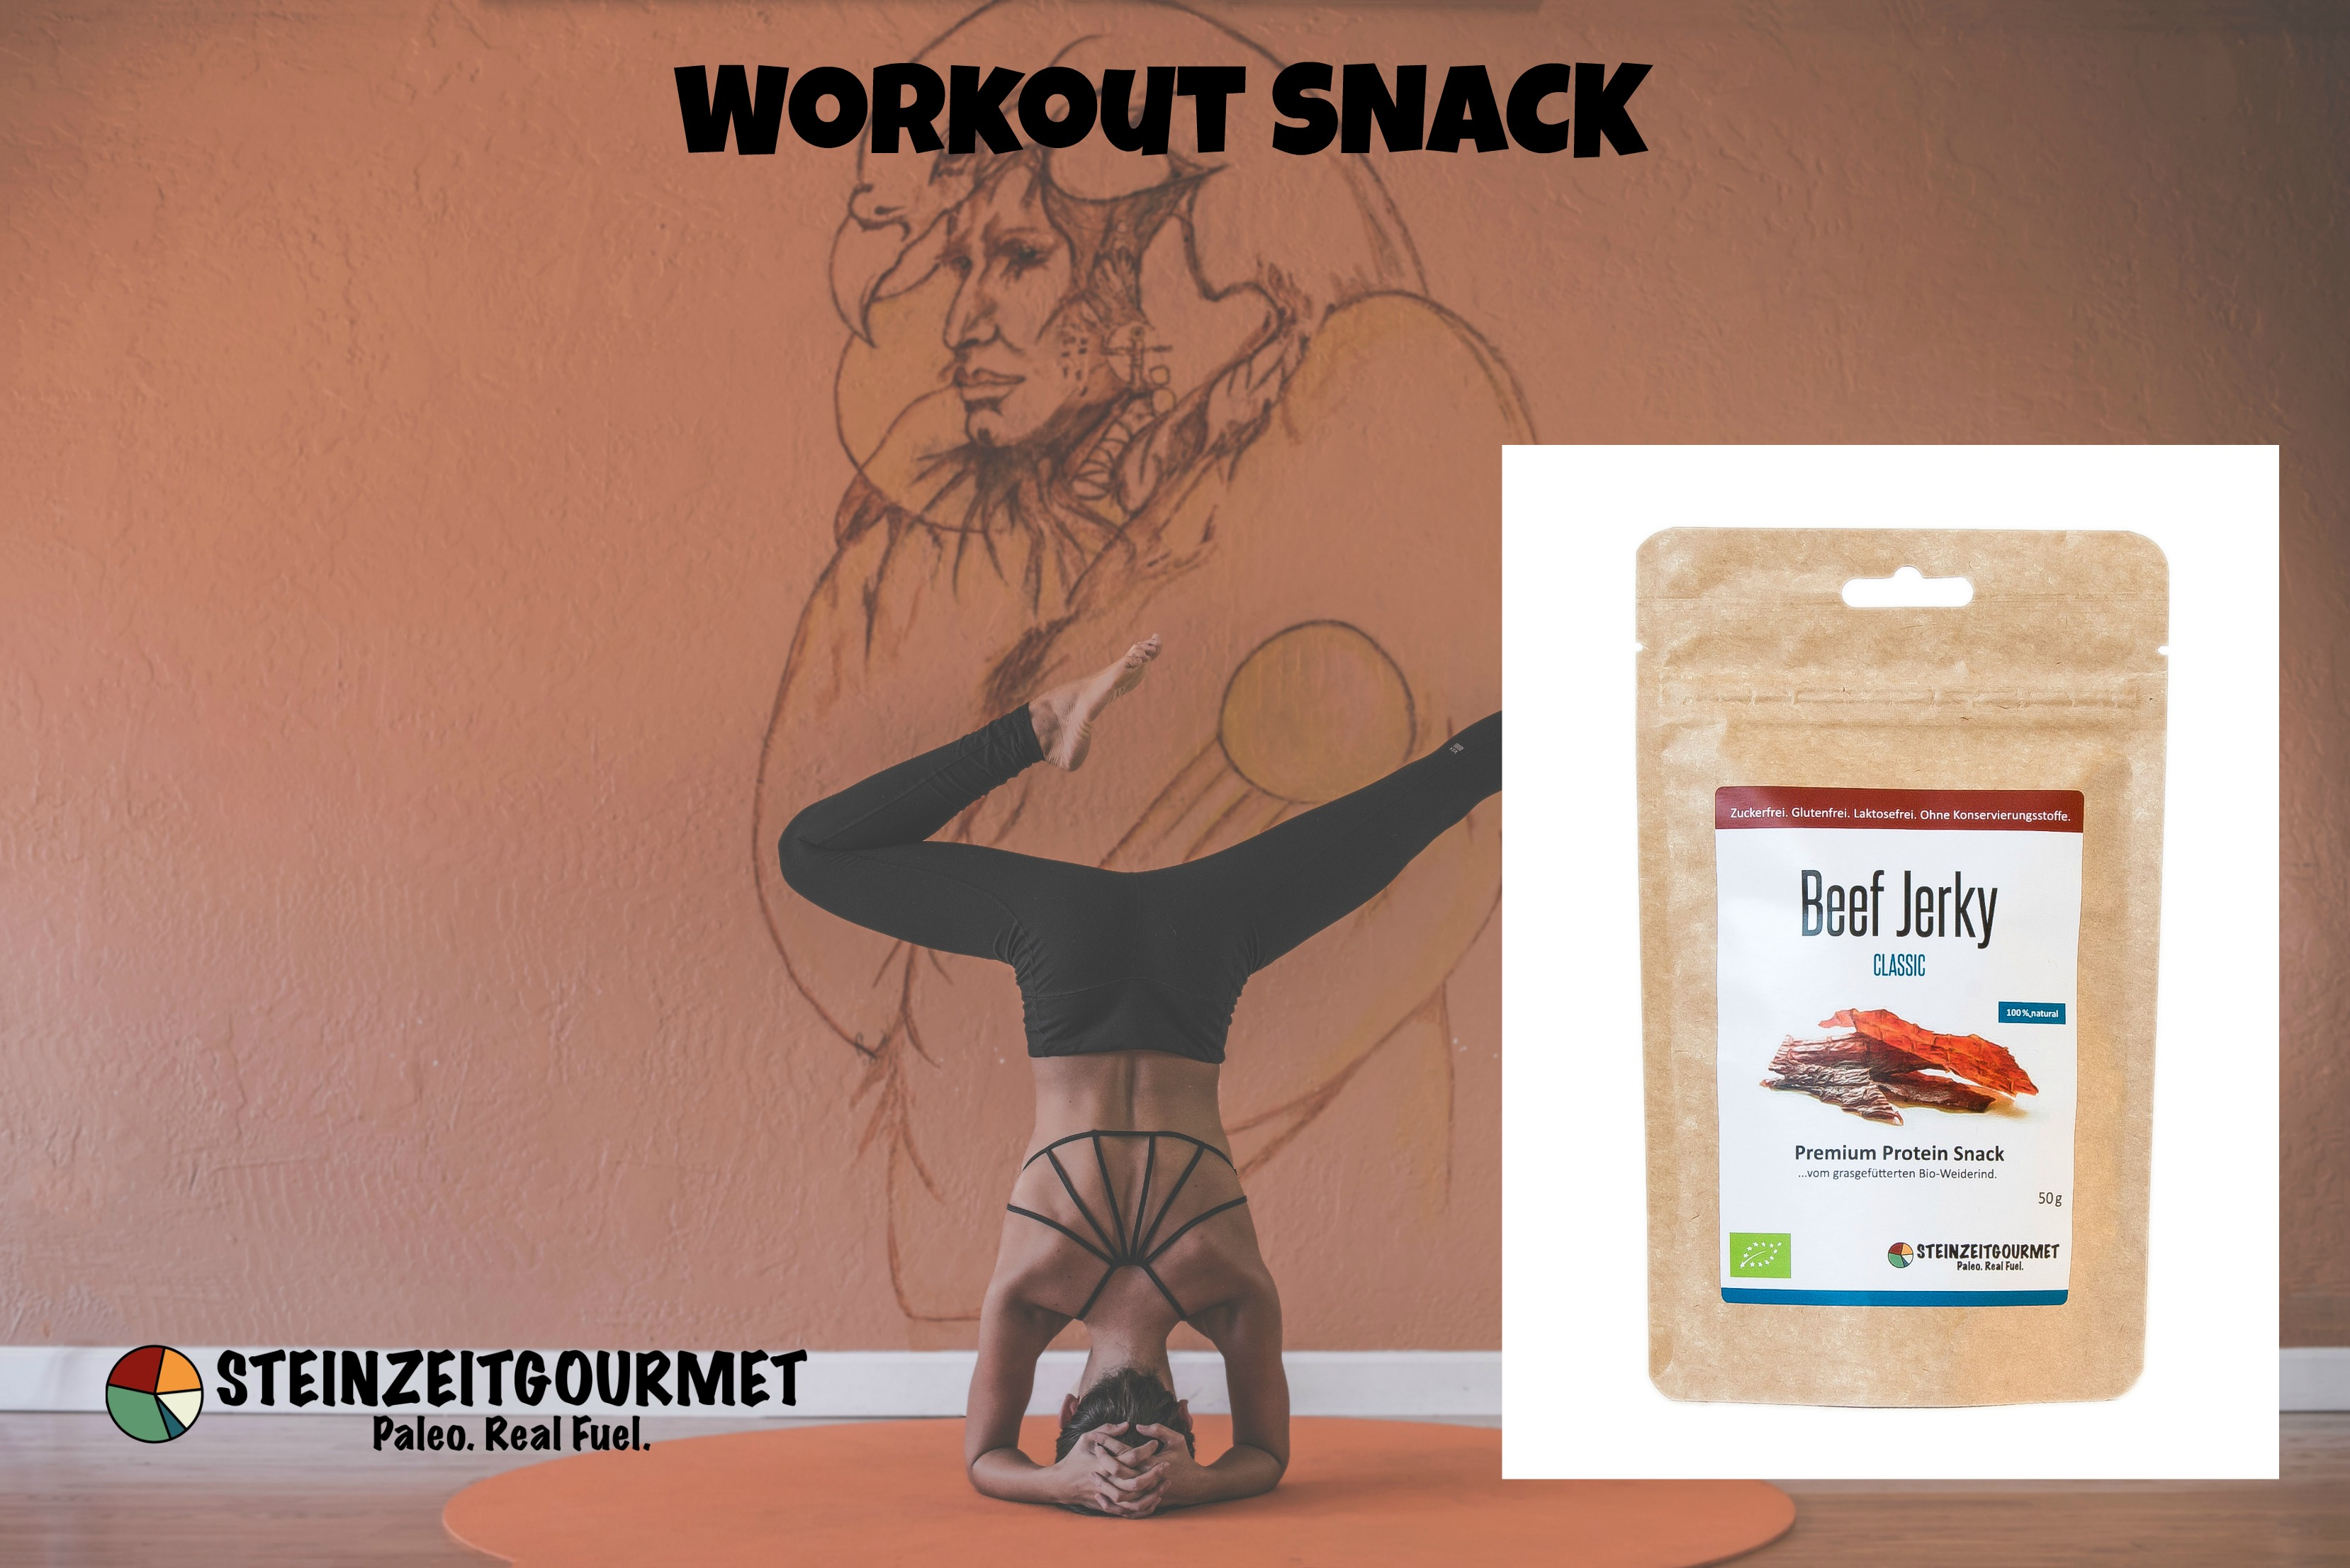 Workout Snack